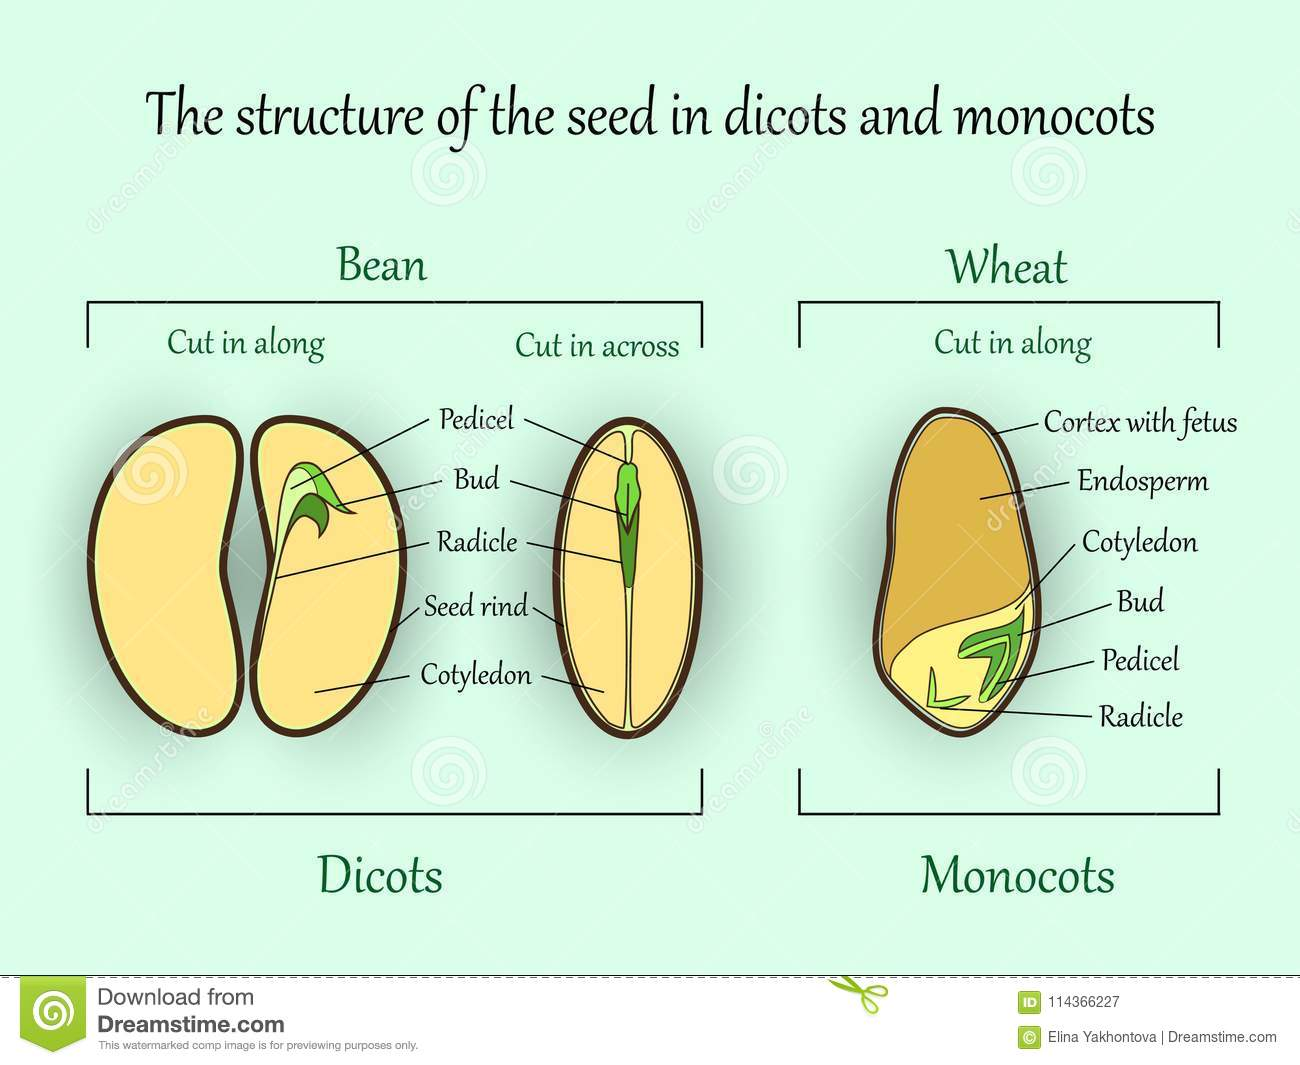 vector education botany banner, structure monocot and dicot plant seeds in  cut sections  agriculture biology science illustration